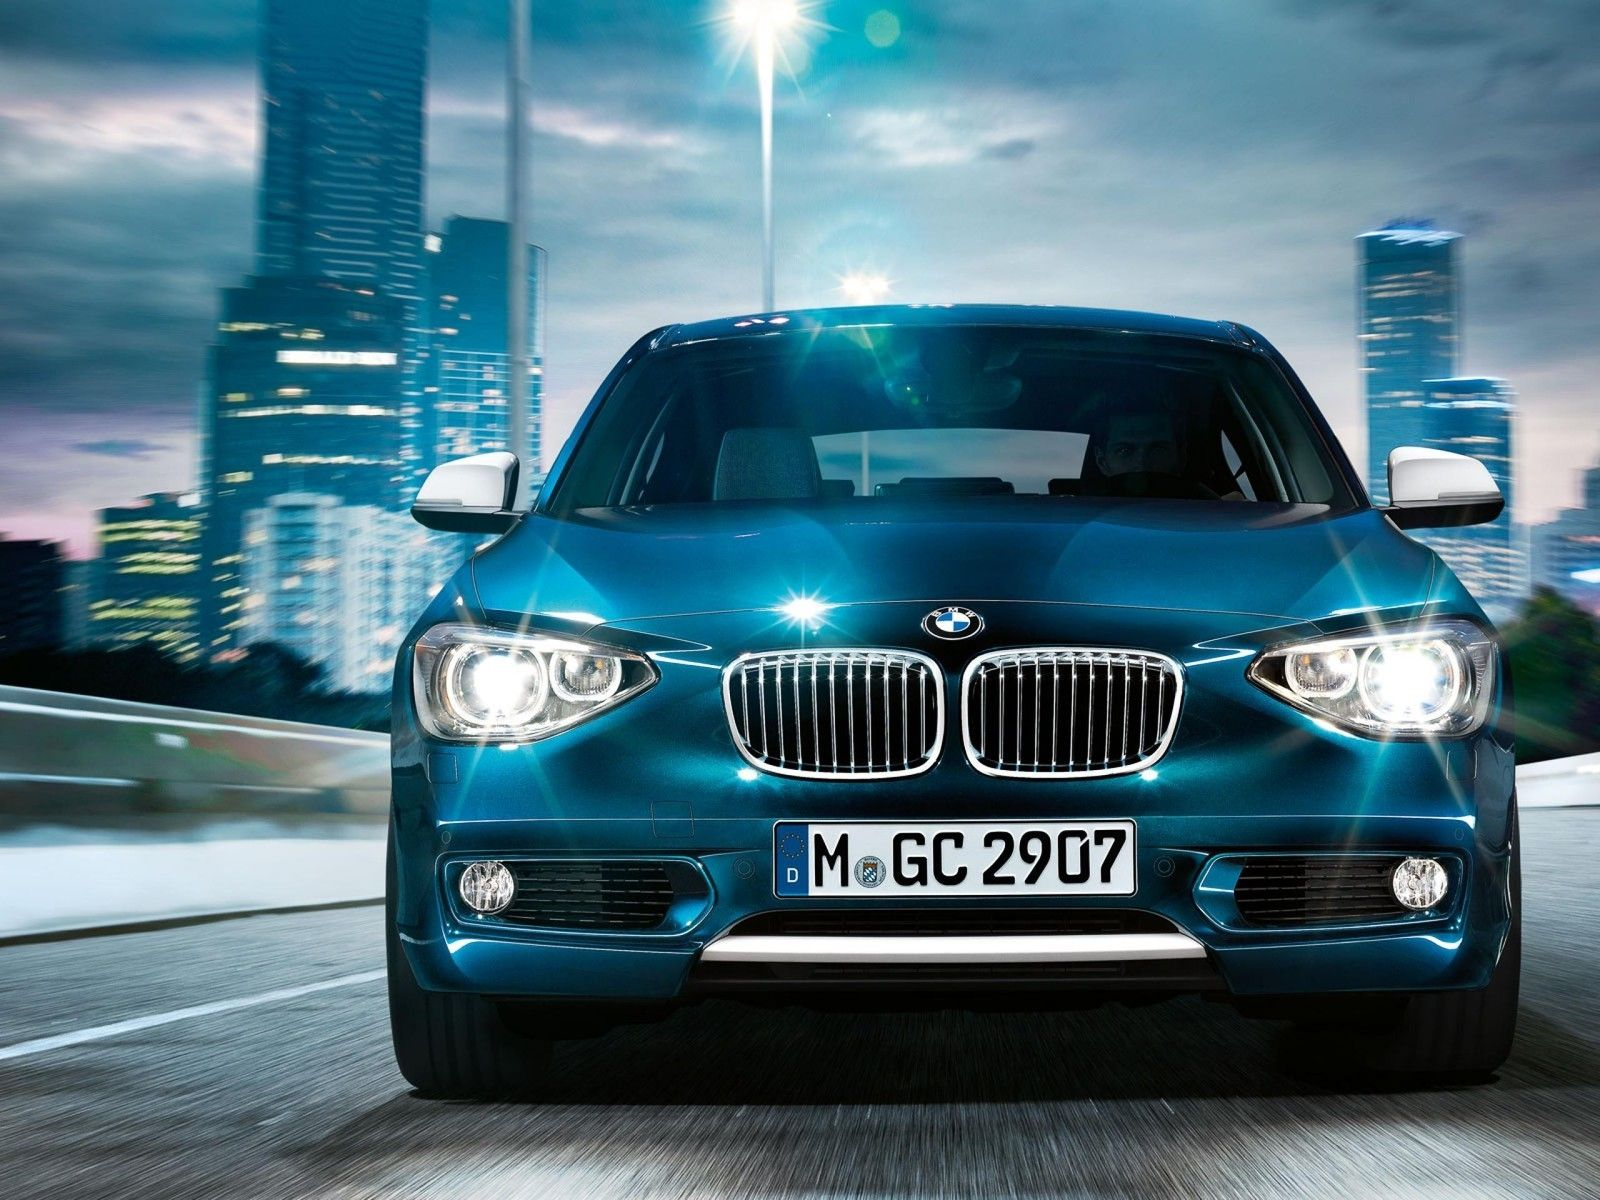 Bmw 3 Series Wallpapers Hd Download Bmw 1 Series Bmw Bmw Cars Full hd bmw car hd wallpaper download